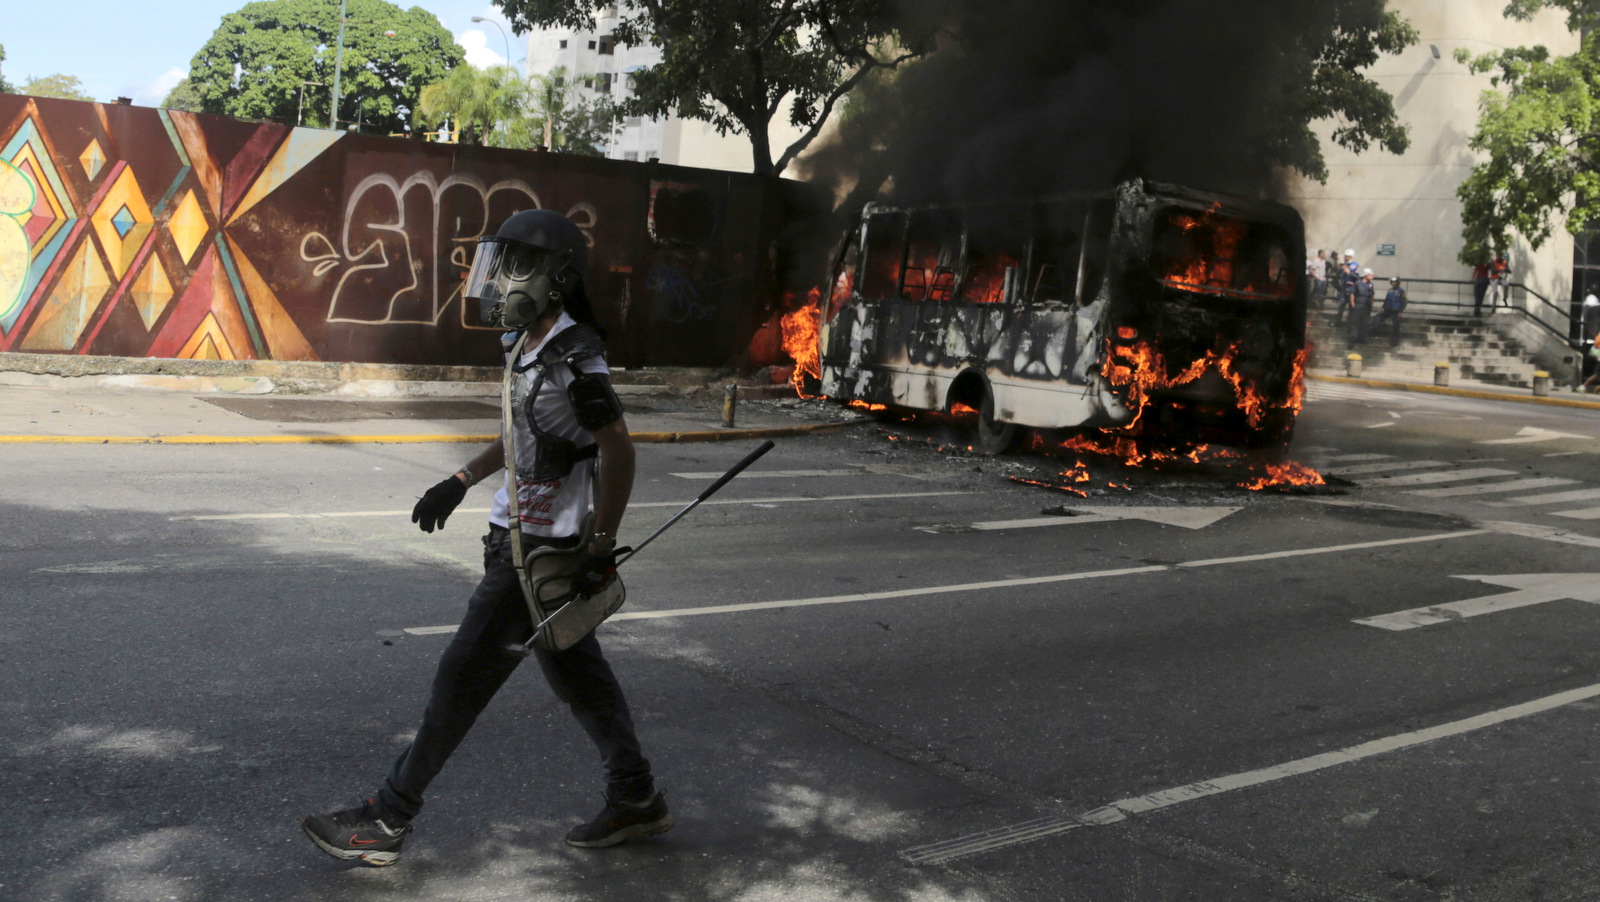 A protester wearing a gas mask and carrying a golf club walks to join fellow protesters, past a burning public transportation bus in Caracas, Venezuela, May 13, 2017. The anti-government protest movement that has drawn masses of people into the streets nearly every day since March, continued on Saturday. (AP/Fernando Llano)